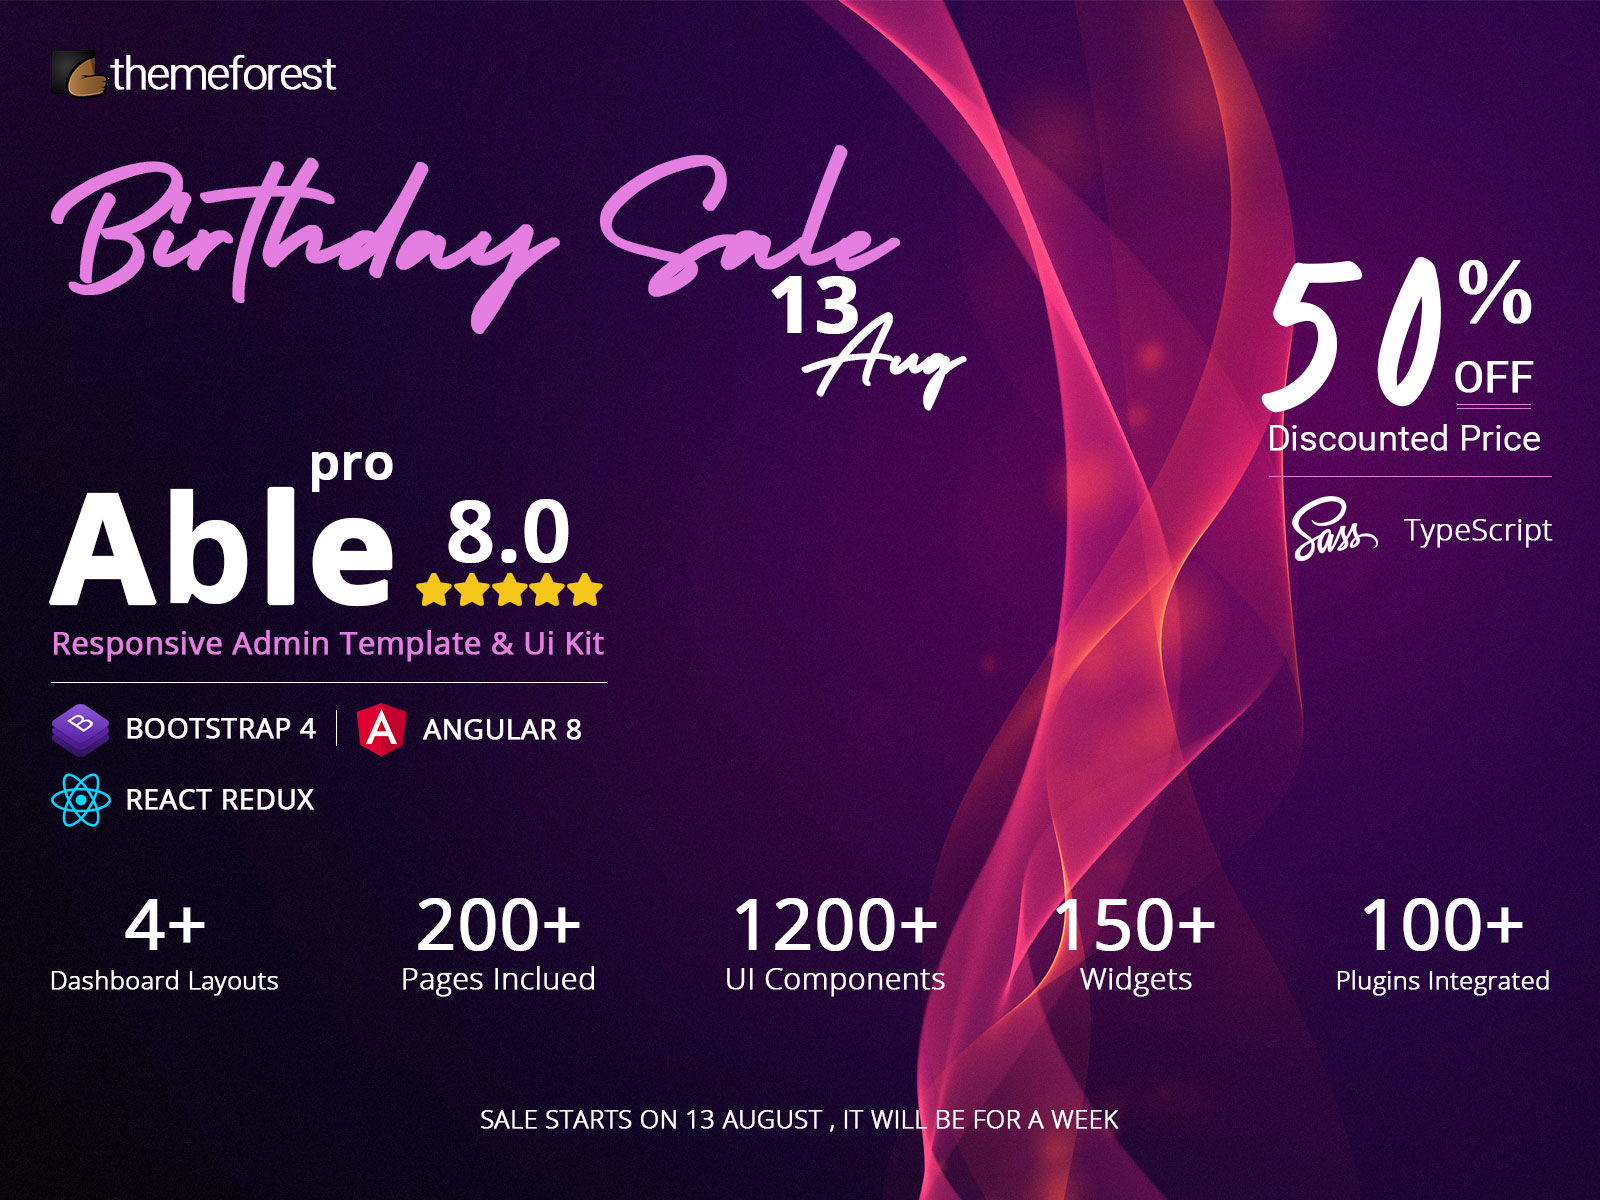 themeforest birthday sale